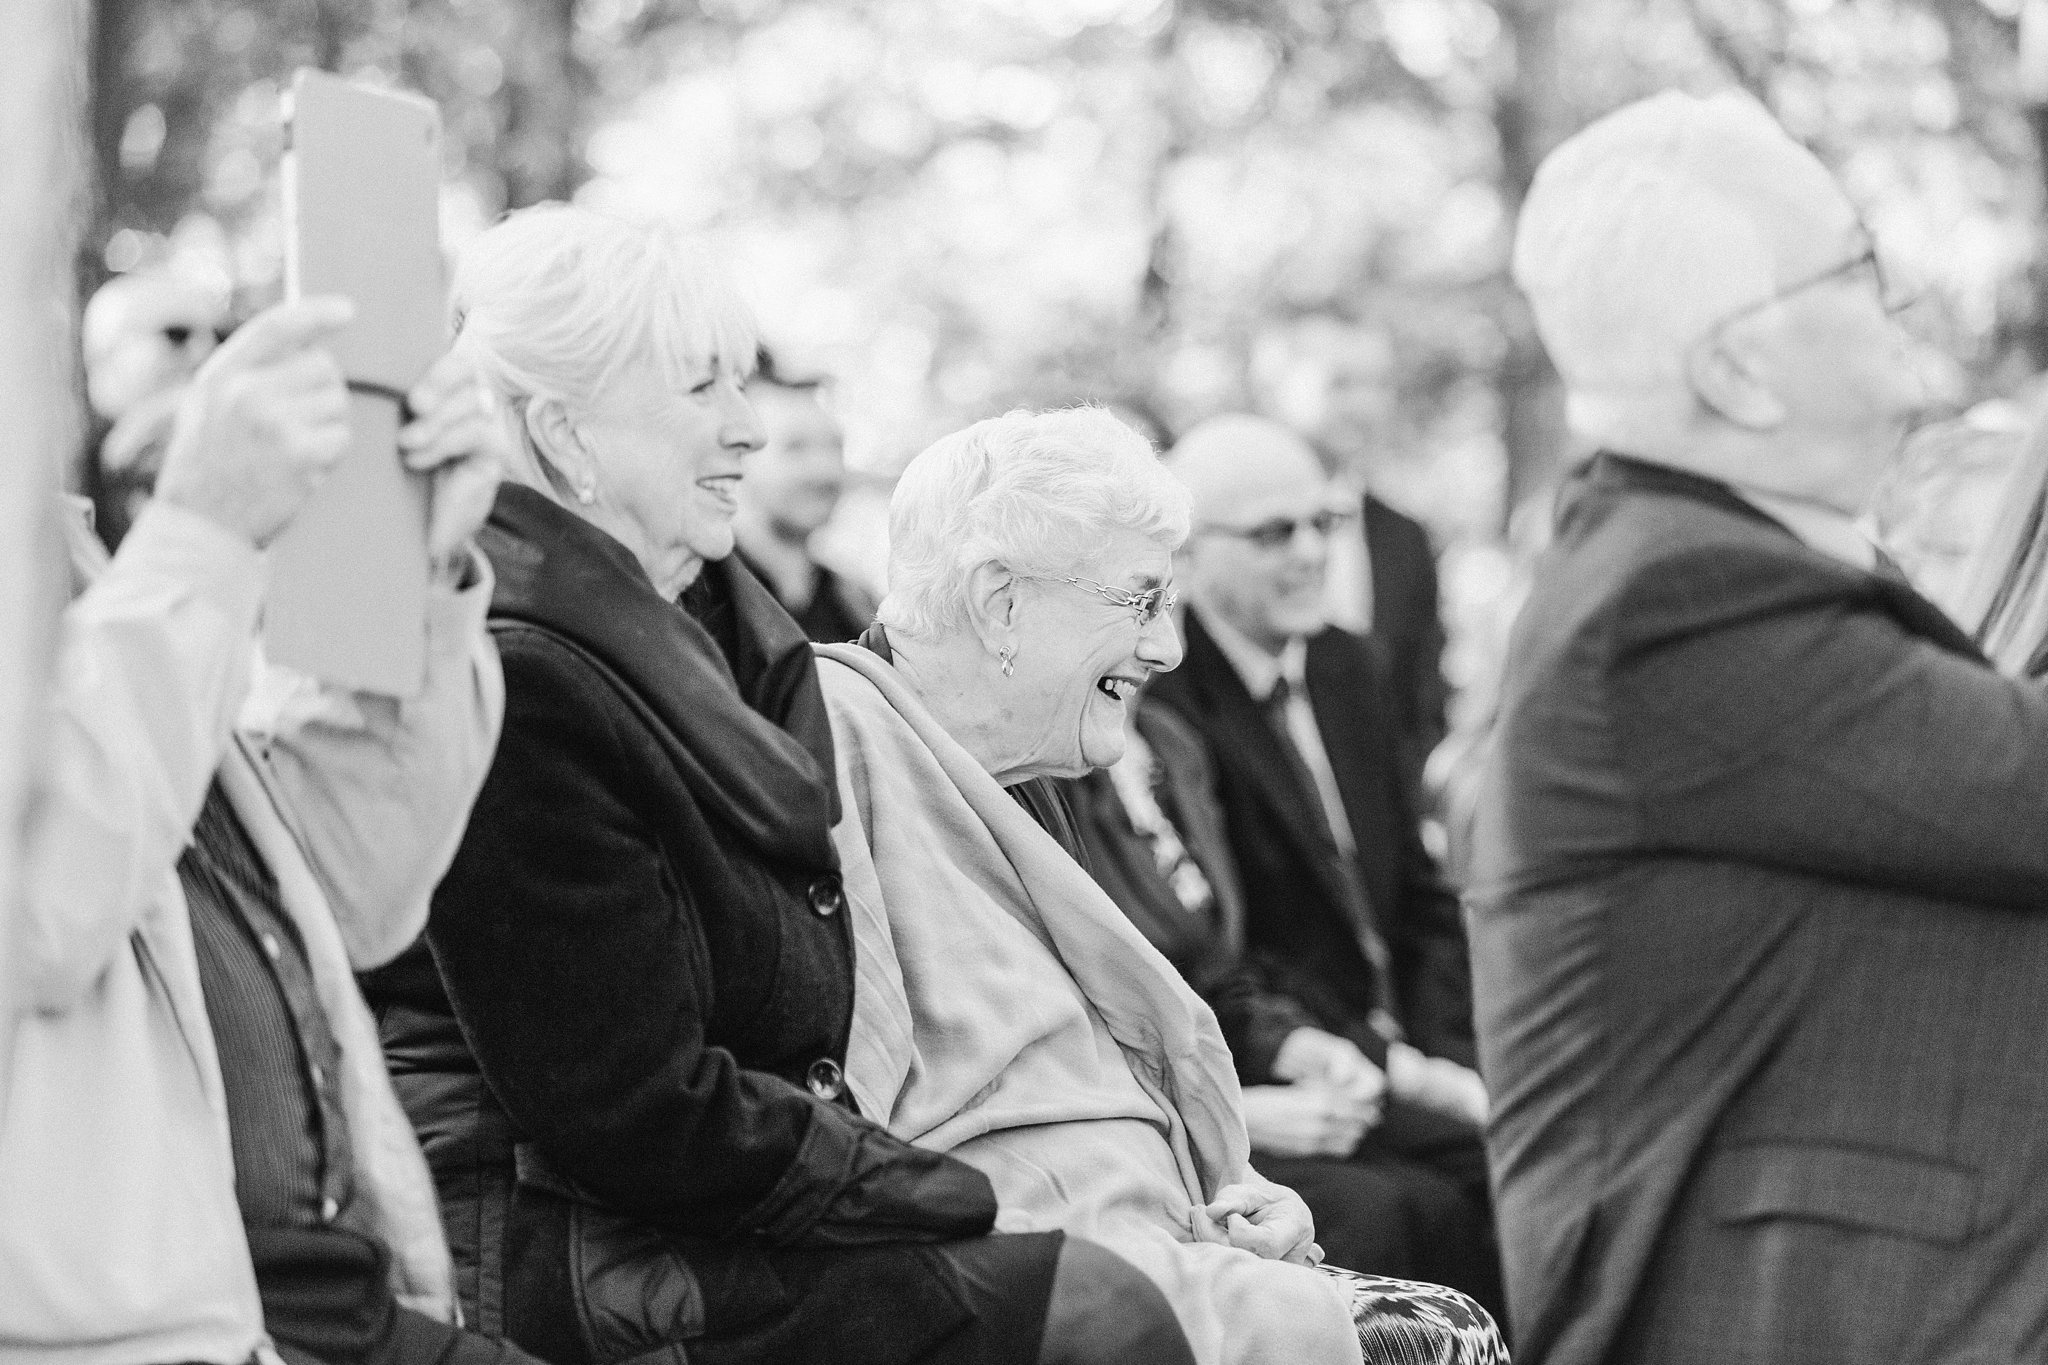 Grandma laughs at wedding ceremony, Opinicon Wedding Photos by Amy Pinder Photography